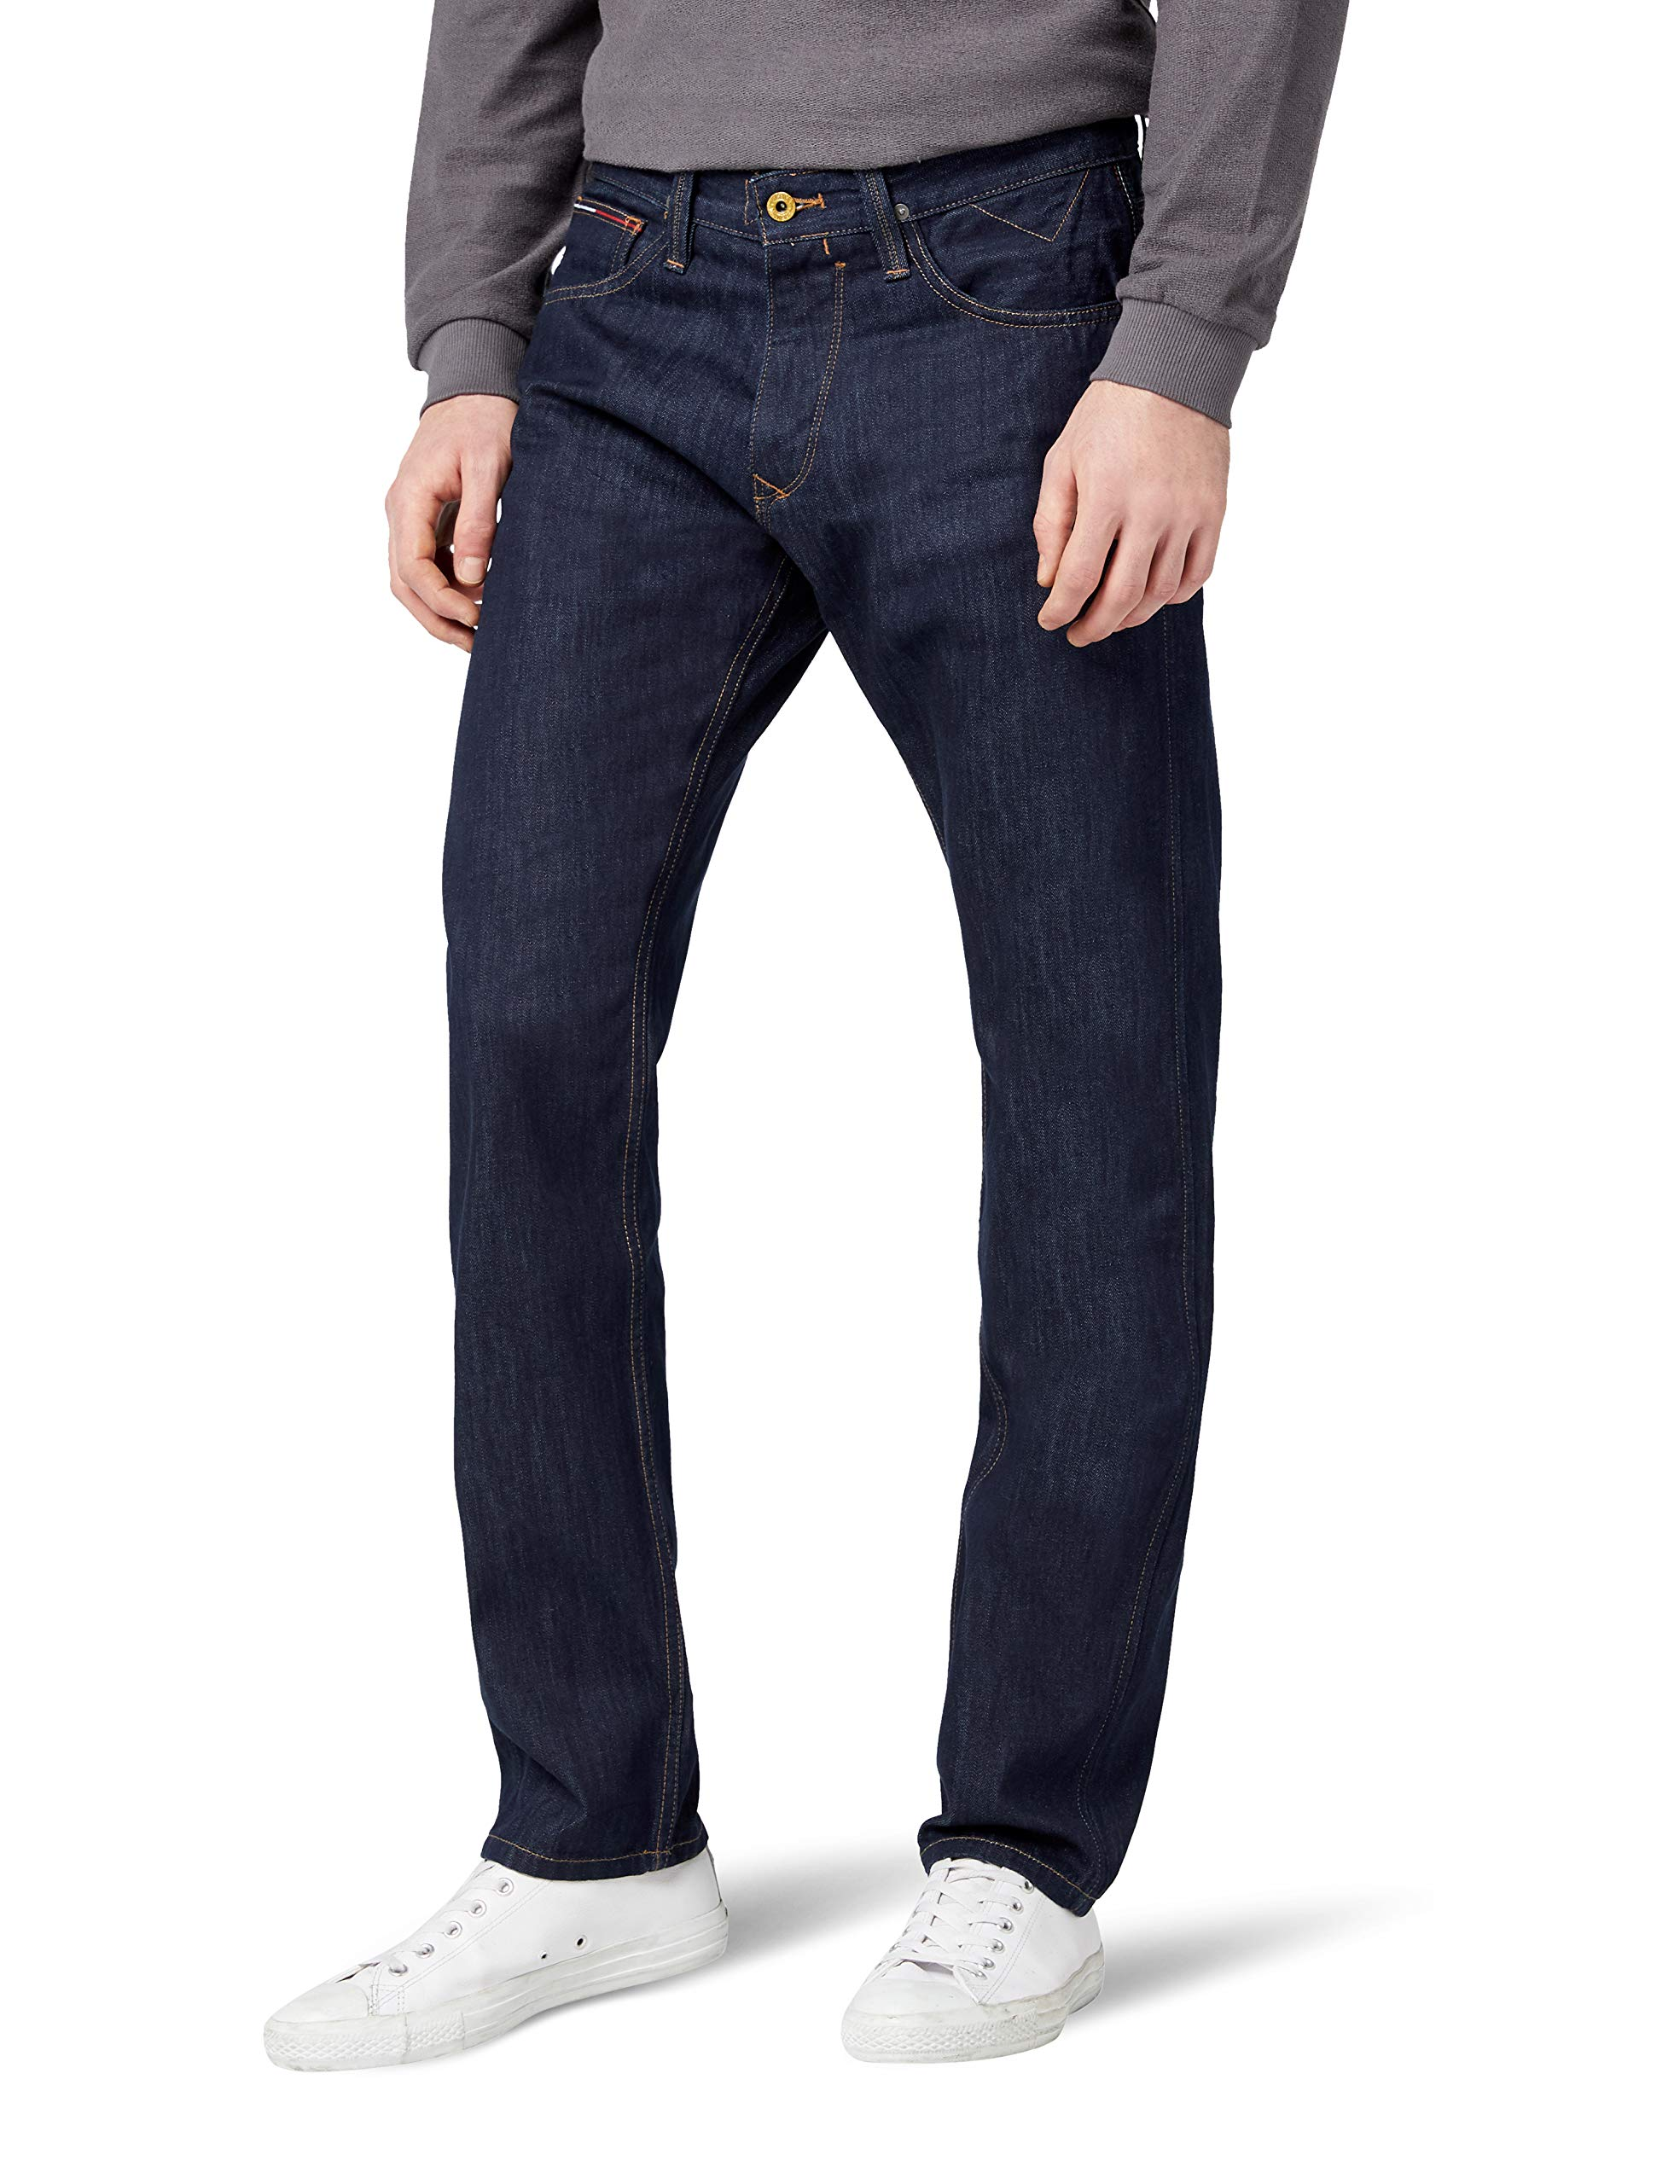 Homme Jean Coupe 34 Mrw DenimRonan Tommy RawFrW32 l34taille Droite Fabricant Hilfiger Jeans 32 Bleumichigan AjLqc345RS